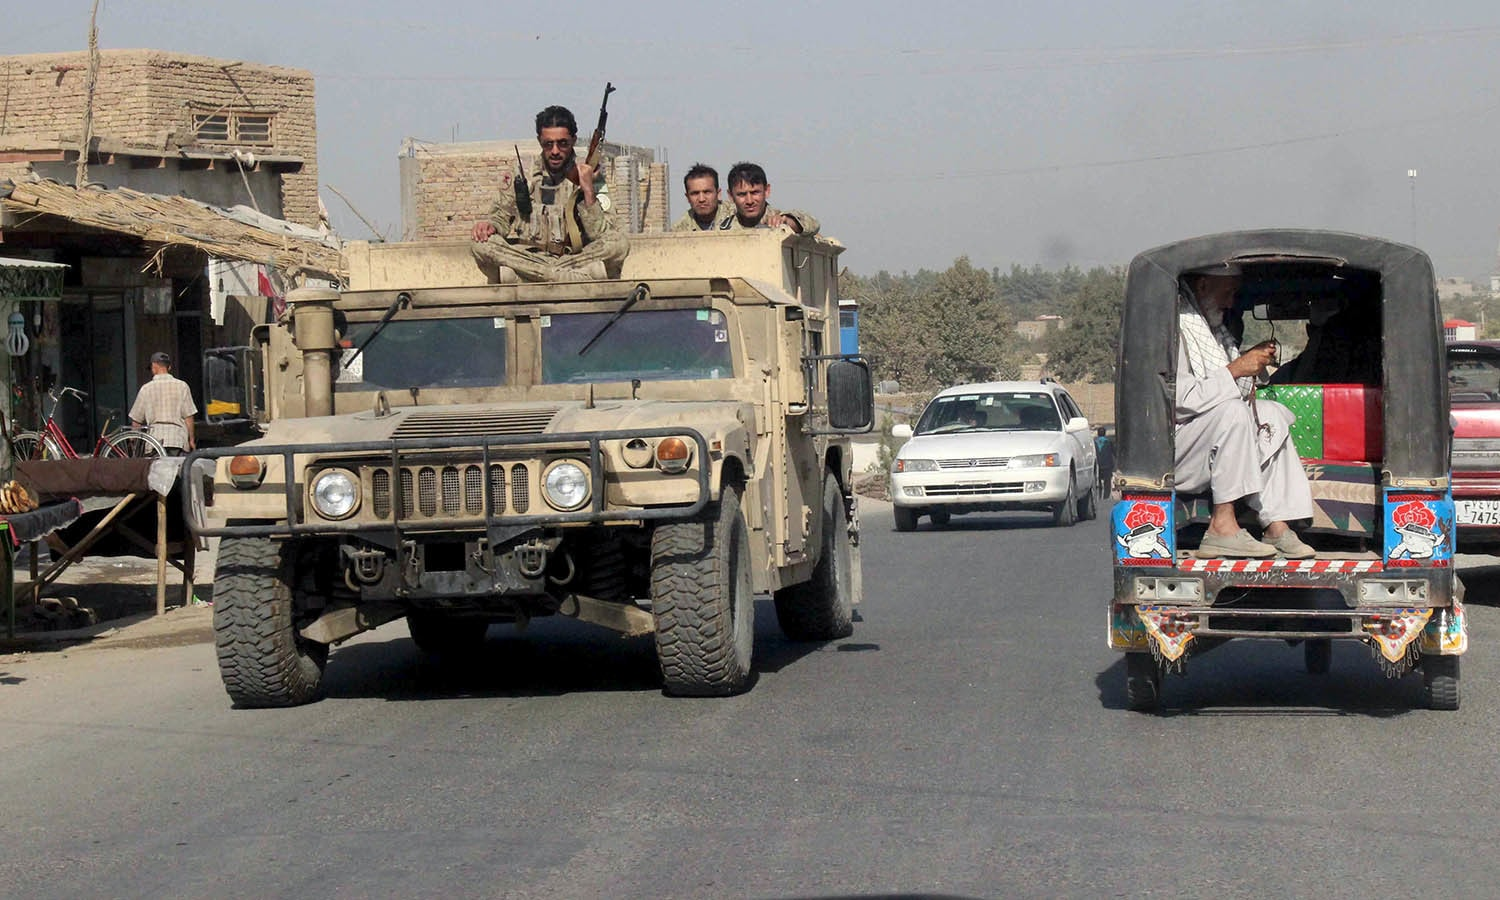 Afghan security forces travel on an armored vehicle in Kunduz Province, Afghanistan. — Reuters